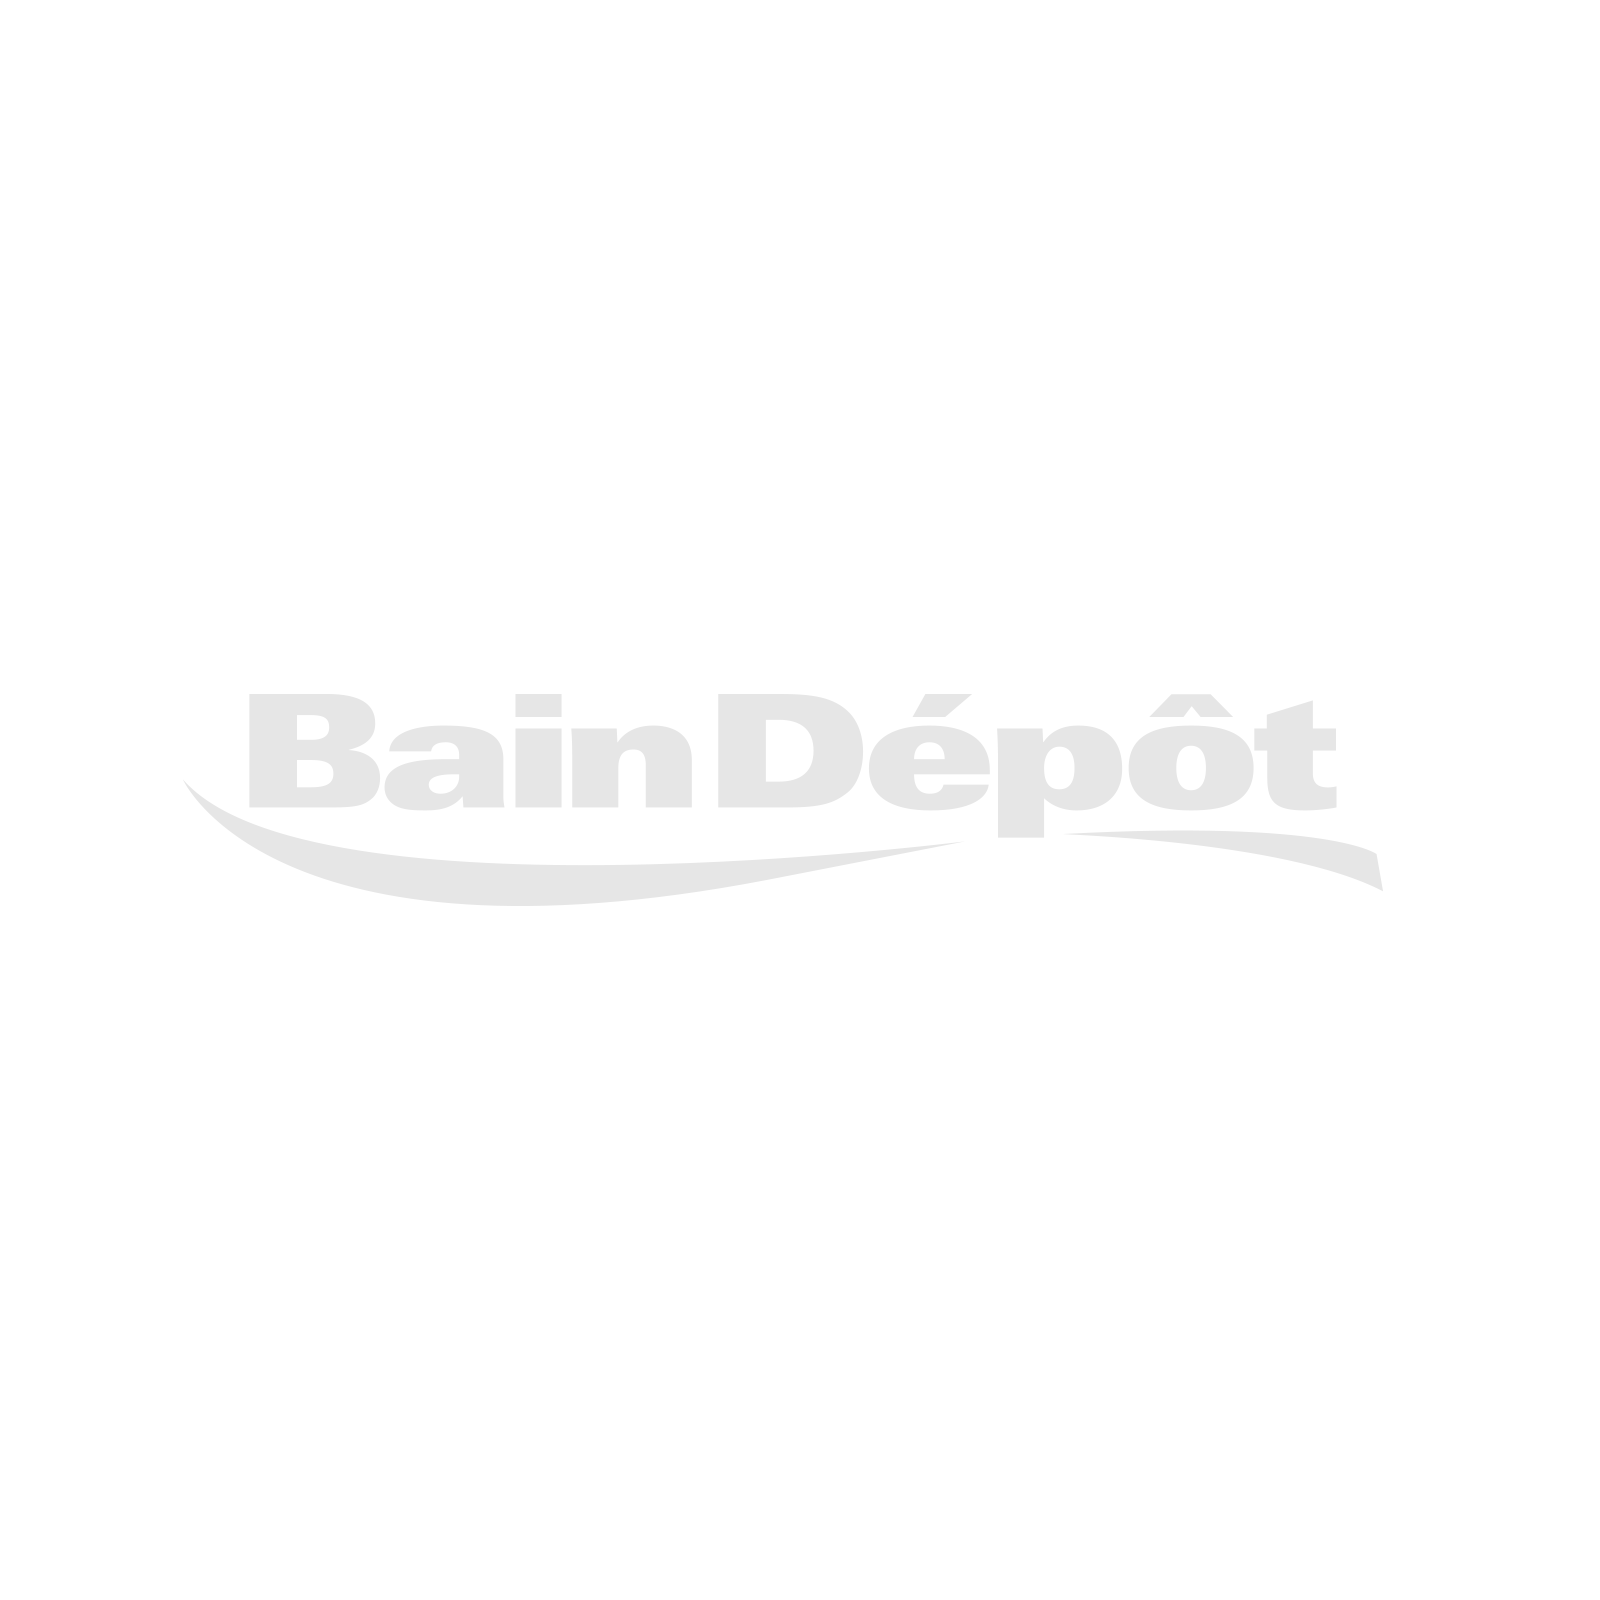 Straight-lined chrome wall-mount bathtub faucet